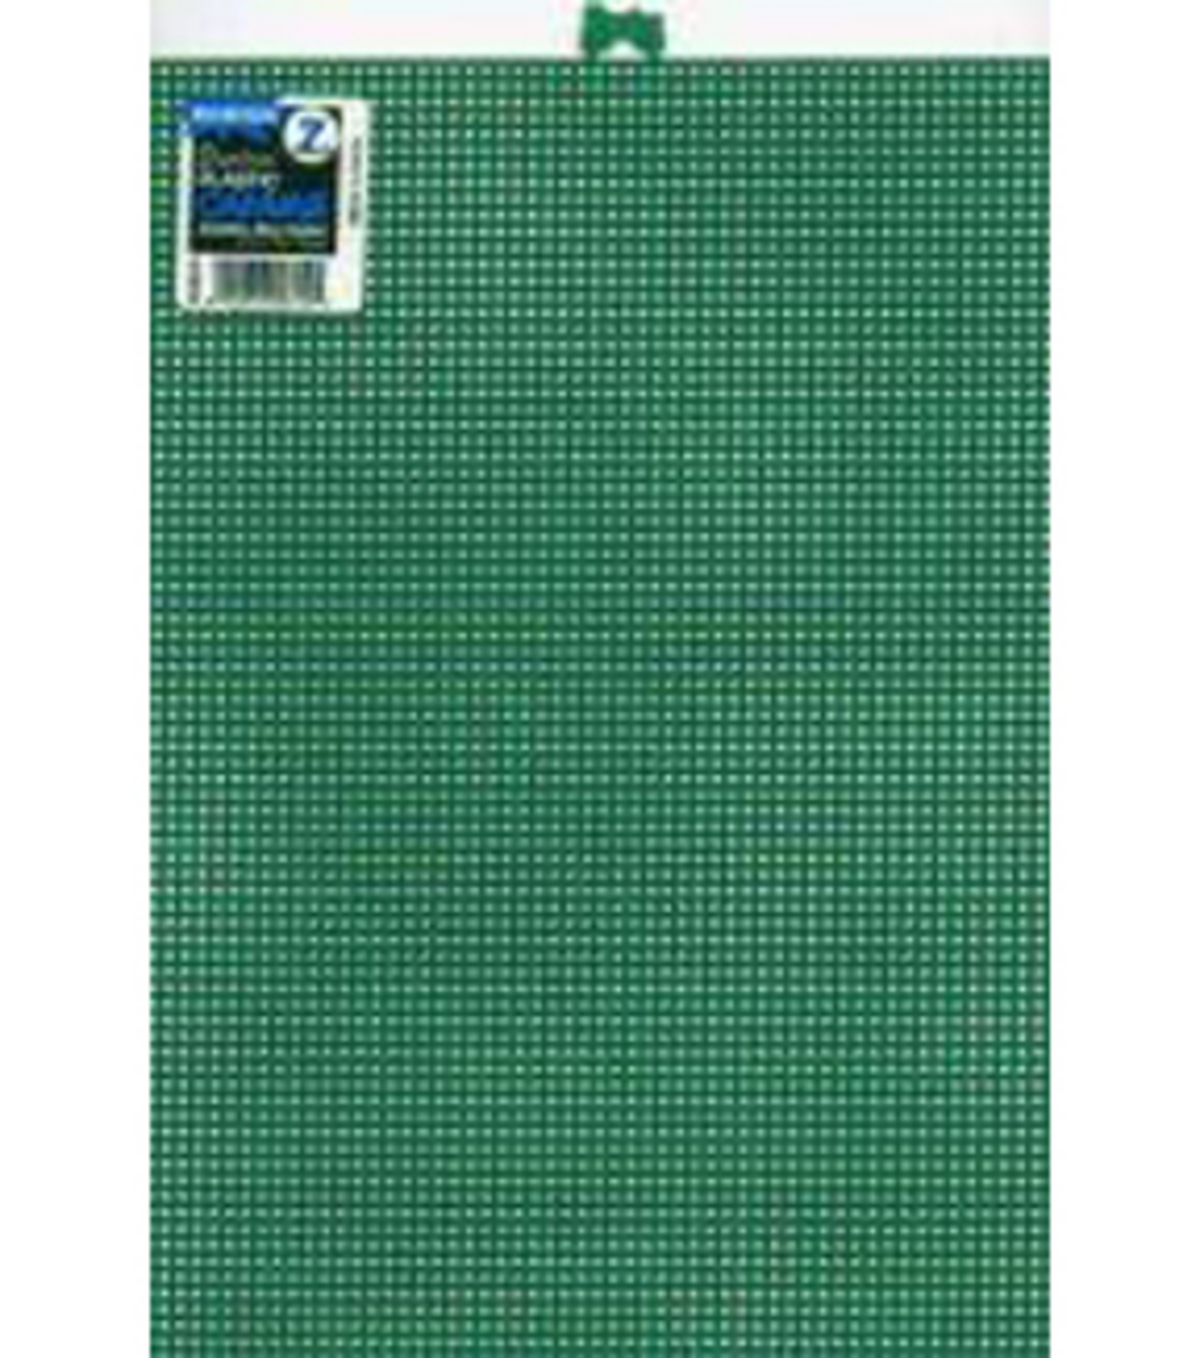 Plastic Canvas 7 Count 10\u0022X13\u0022-Green